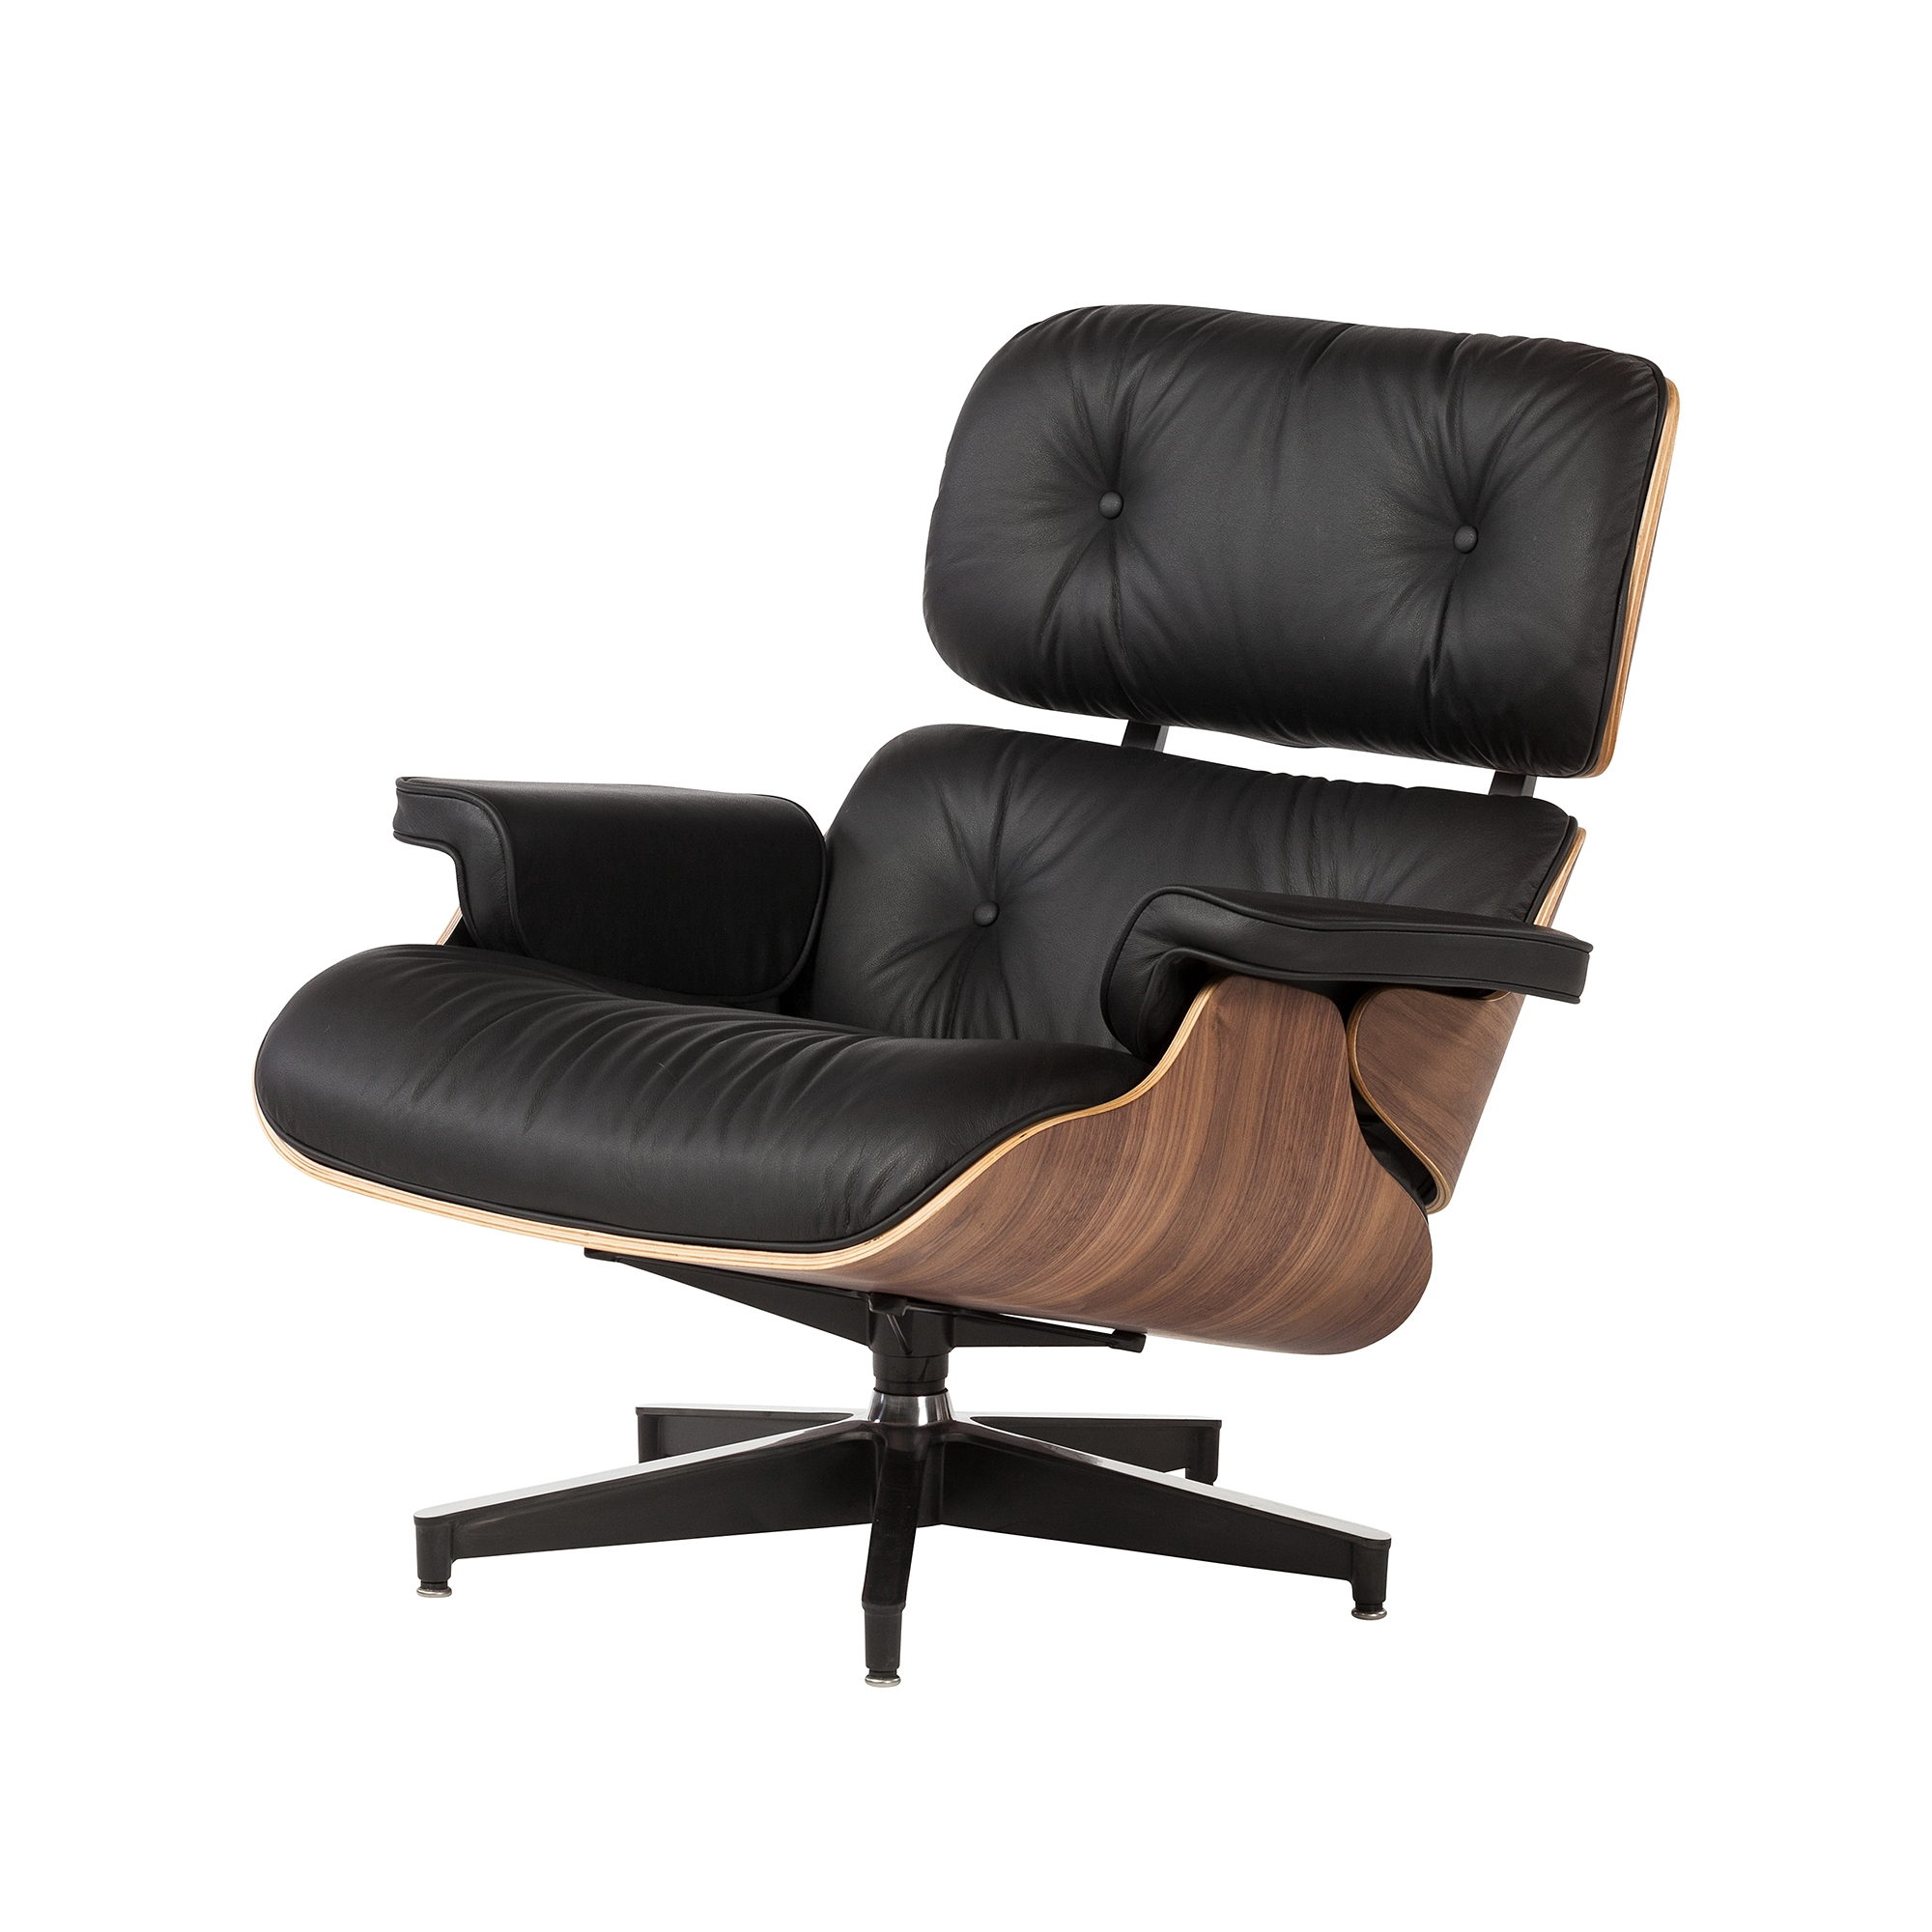 Eames Lounge Chair with Ottoman The Khazana Home Austin Furniture